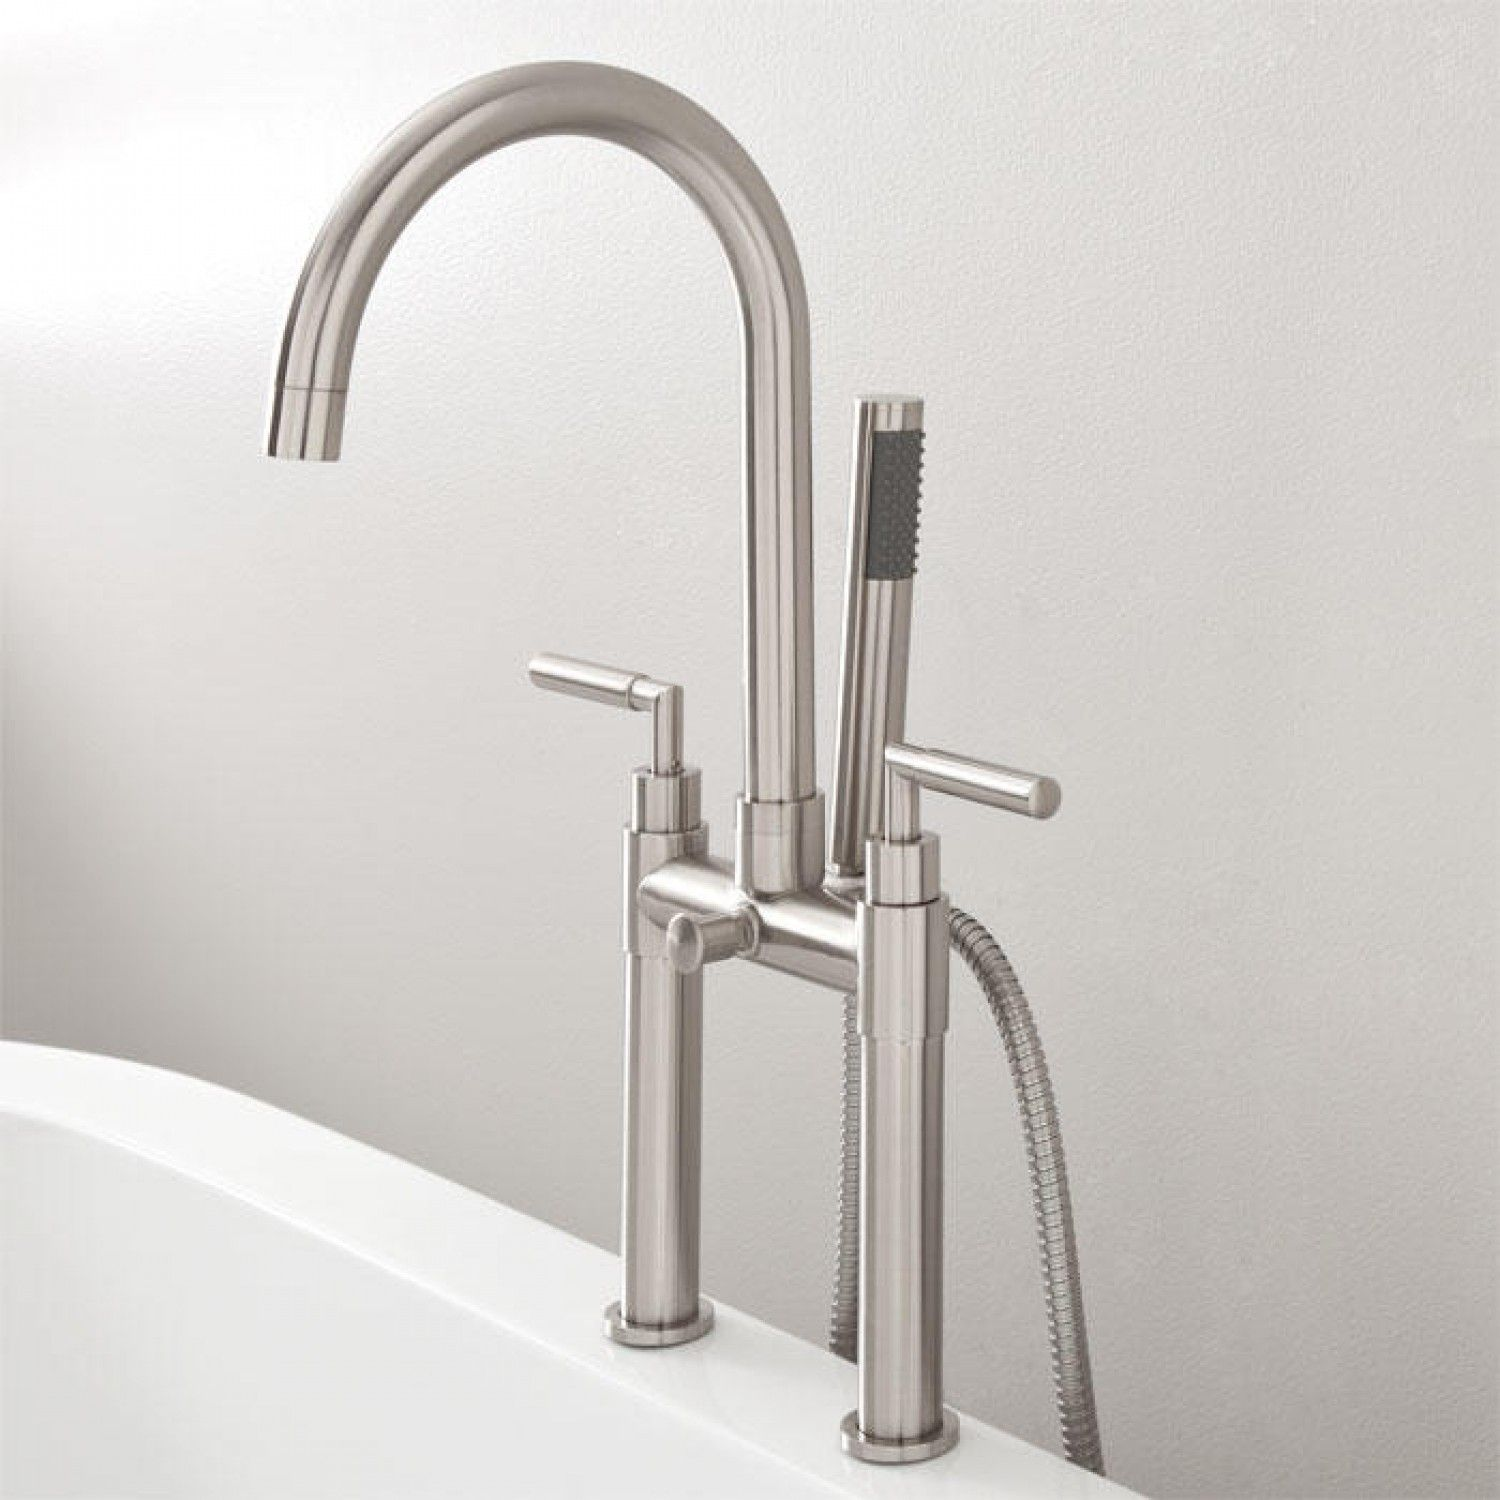 Desma Deck-Mount Tub Faucet and Hand Shower | house | B A T H ...